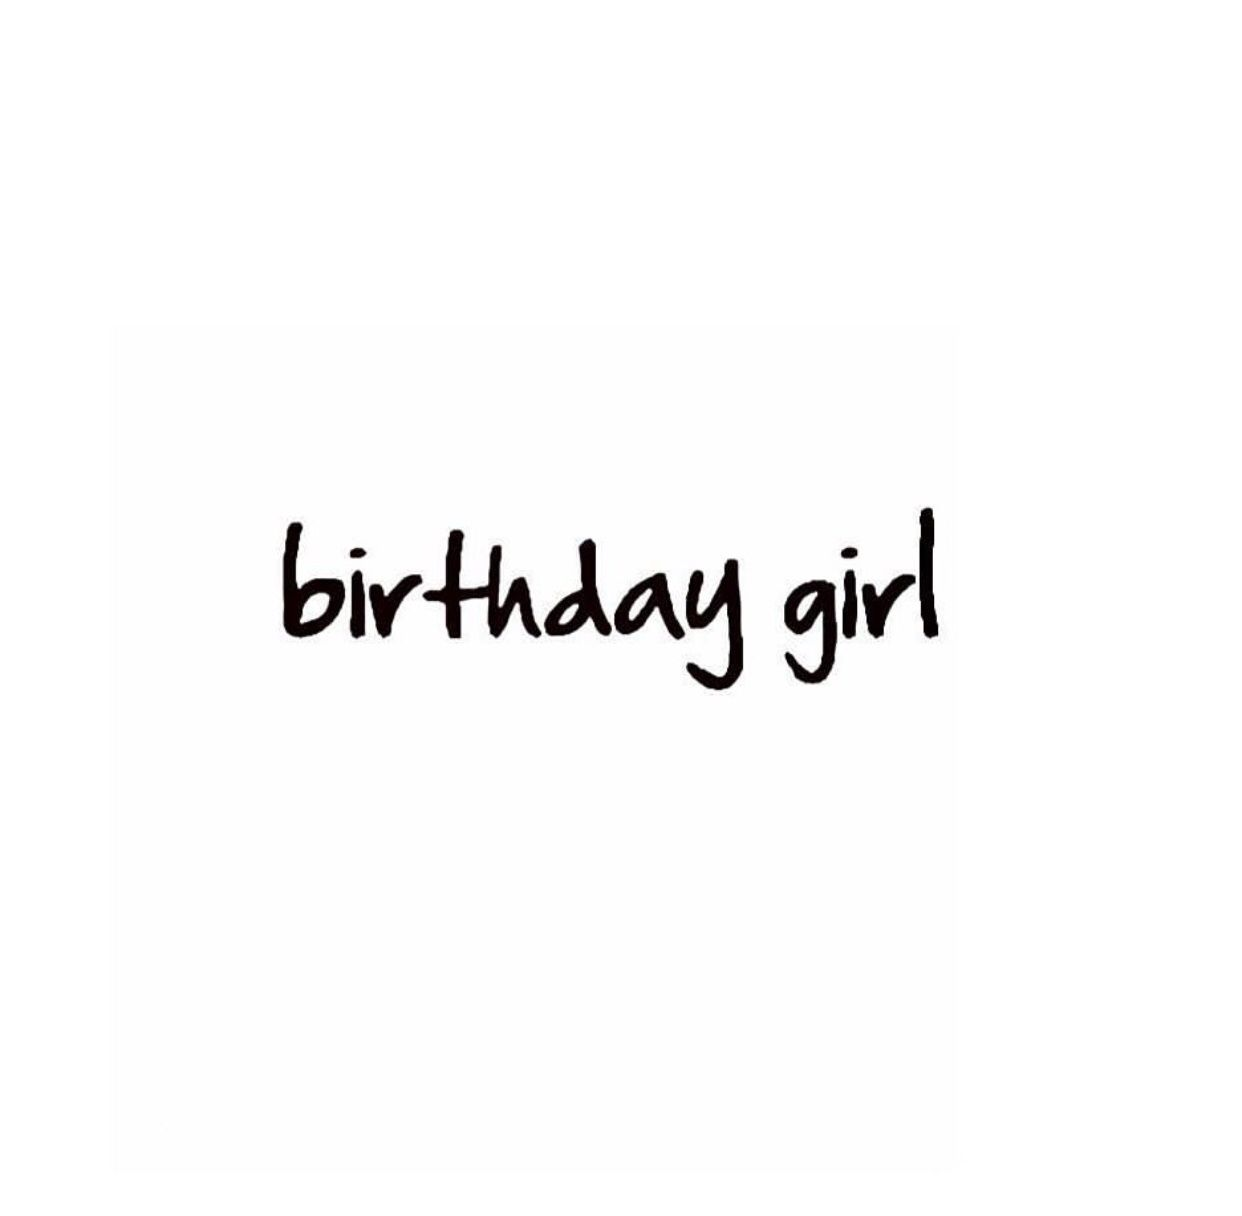 Pin by Tonia Vojnovic on smart words | Birthday captions ...